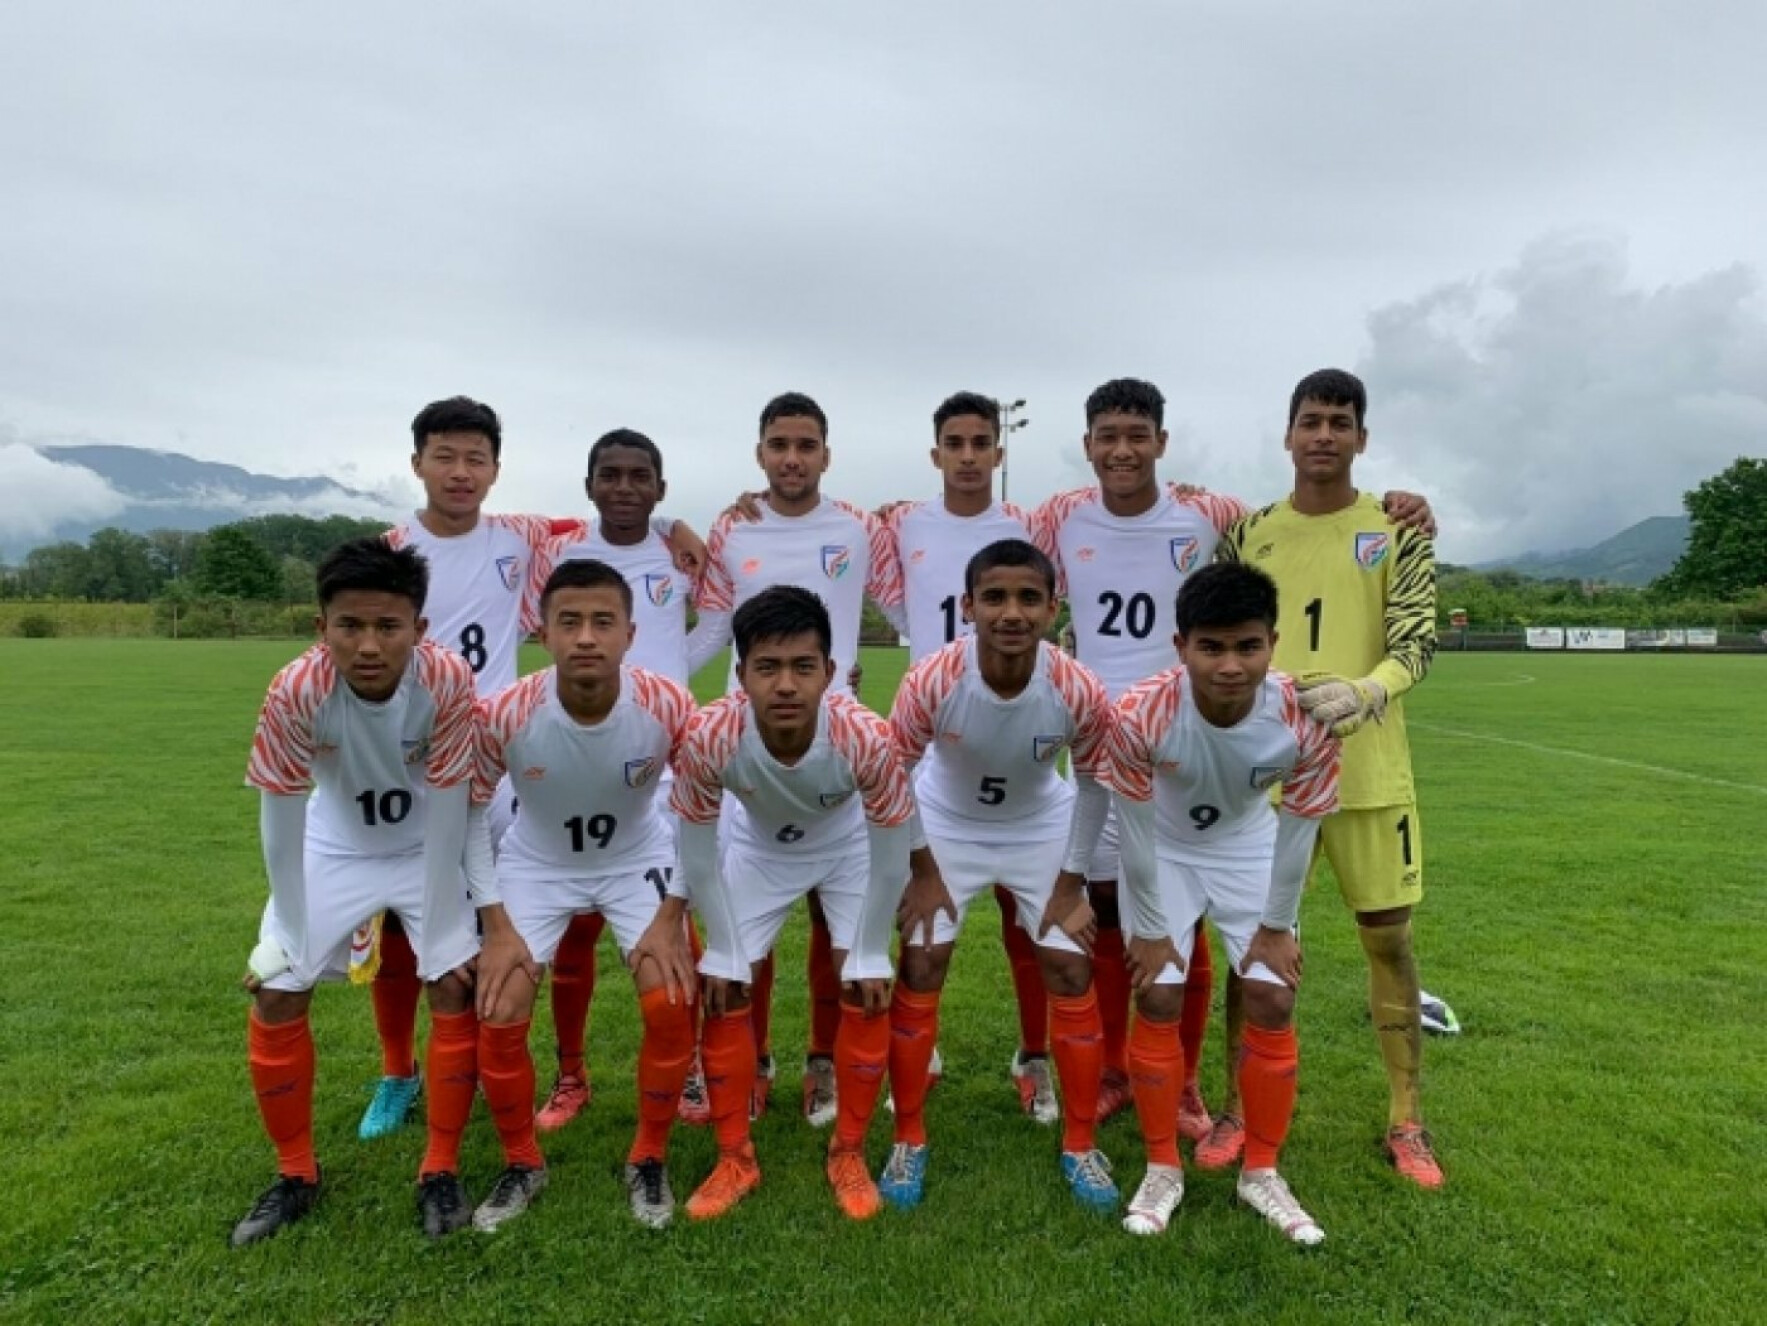 MU-15 Tournament 2019: India go down narrowly to Macedonia